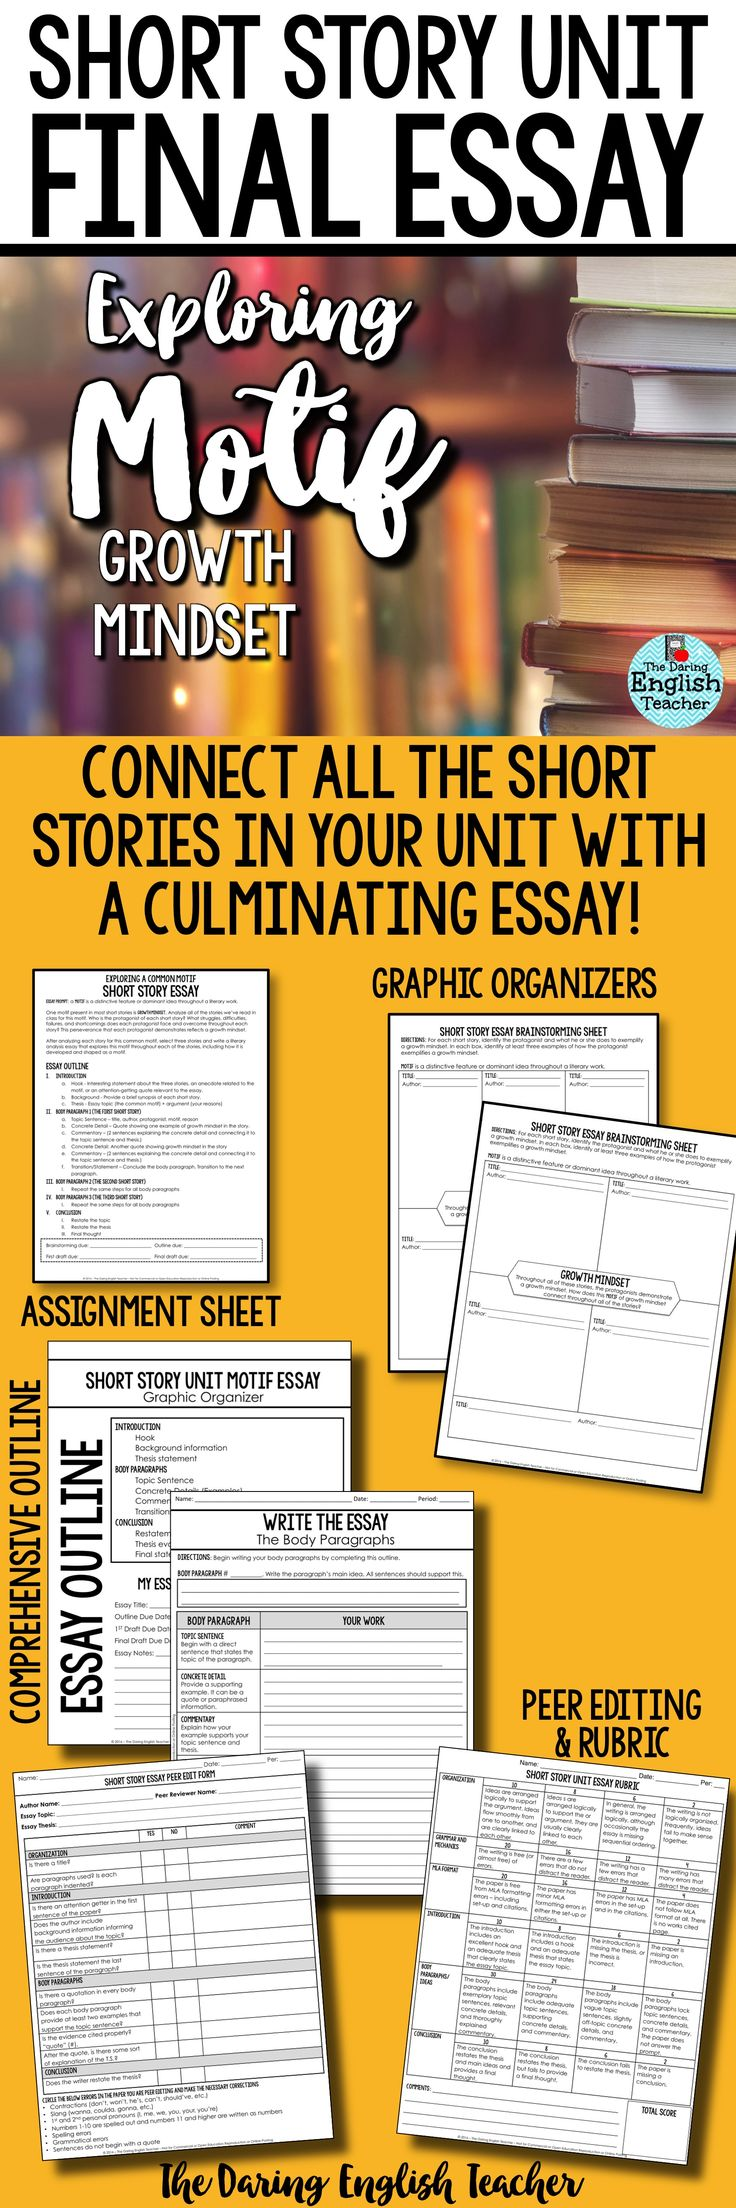 Best Analytical Writing Images On Pinterest  Teaching  Explore And Cultivate A Growth Mindset In Your Secondary English Classroom  With This Short Story Essay